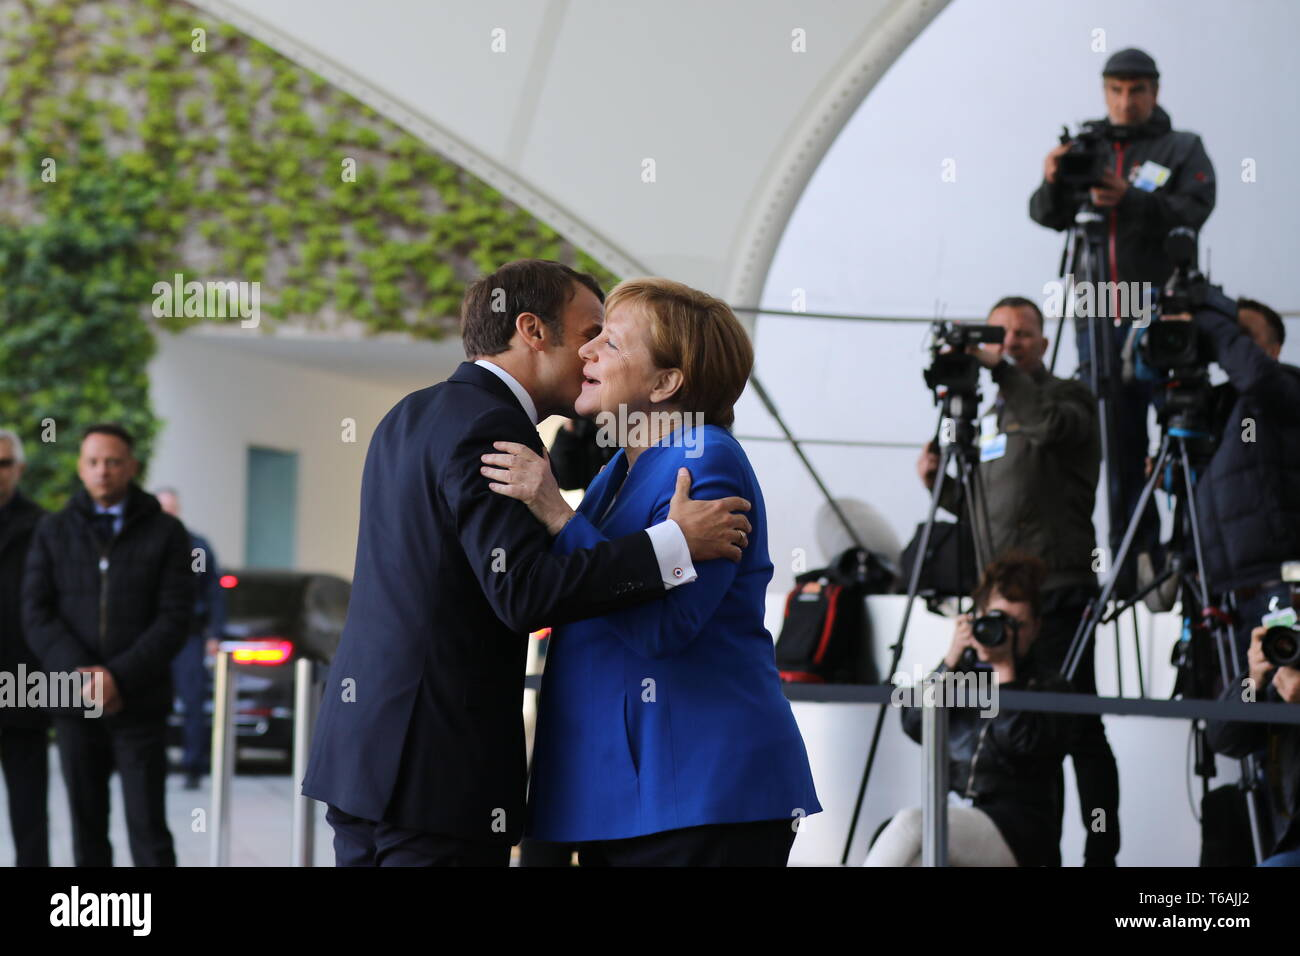 29.04.2019, Berlin, Germany, Chancellor Angela Merkel and the President of the French Republic, Emmanuel Macron in the Chancellery. Chancellor Angela  - Stock Image